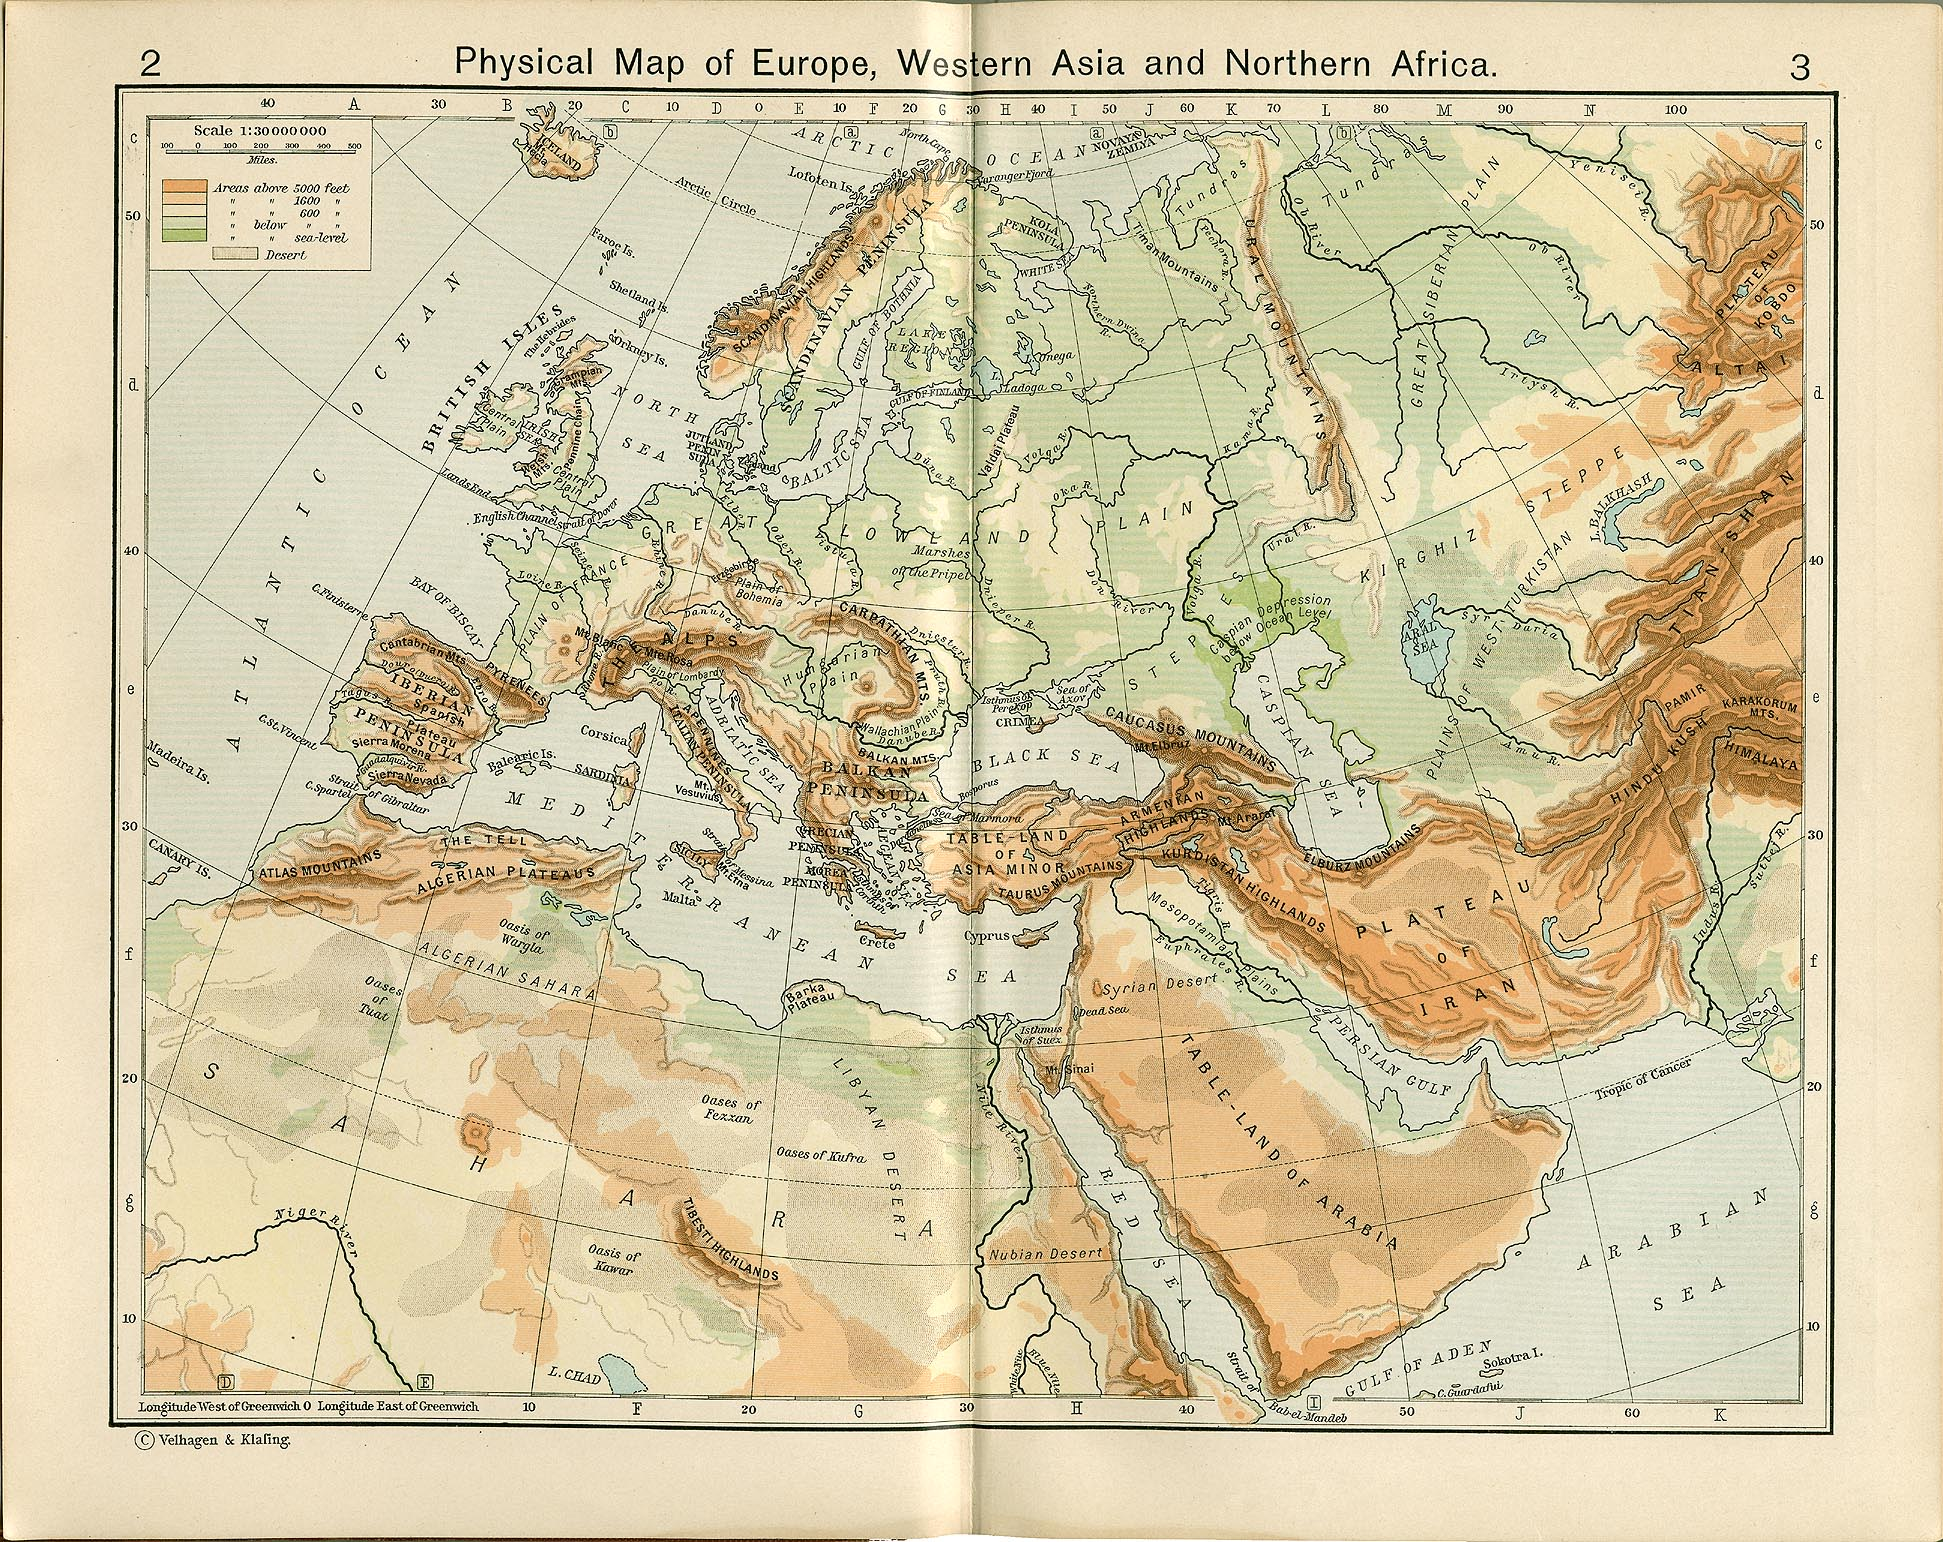 physical map of europe western asia and northern africa